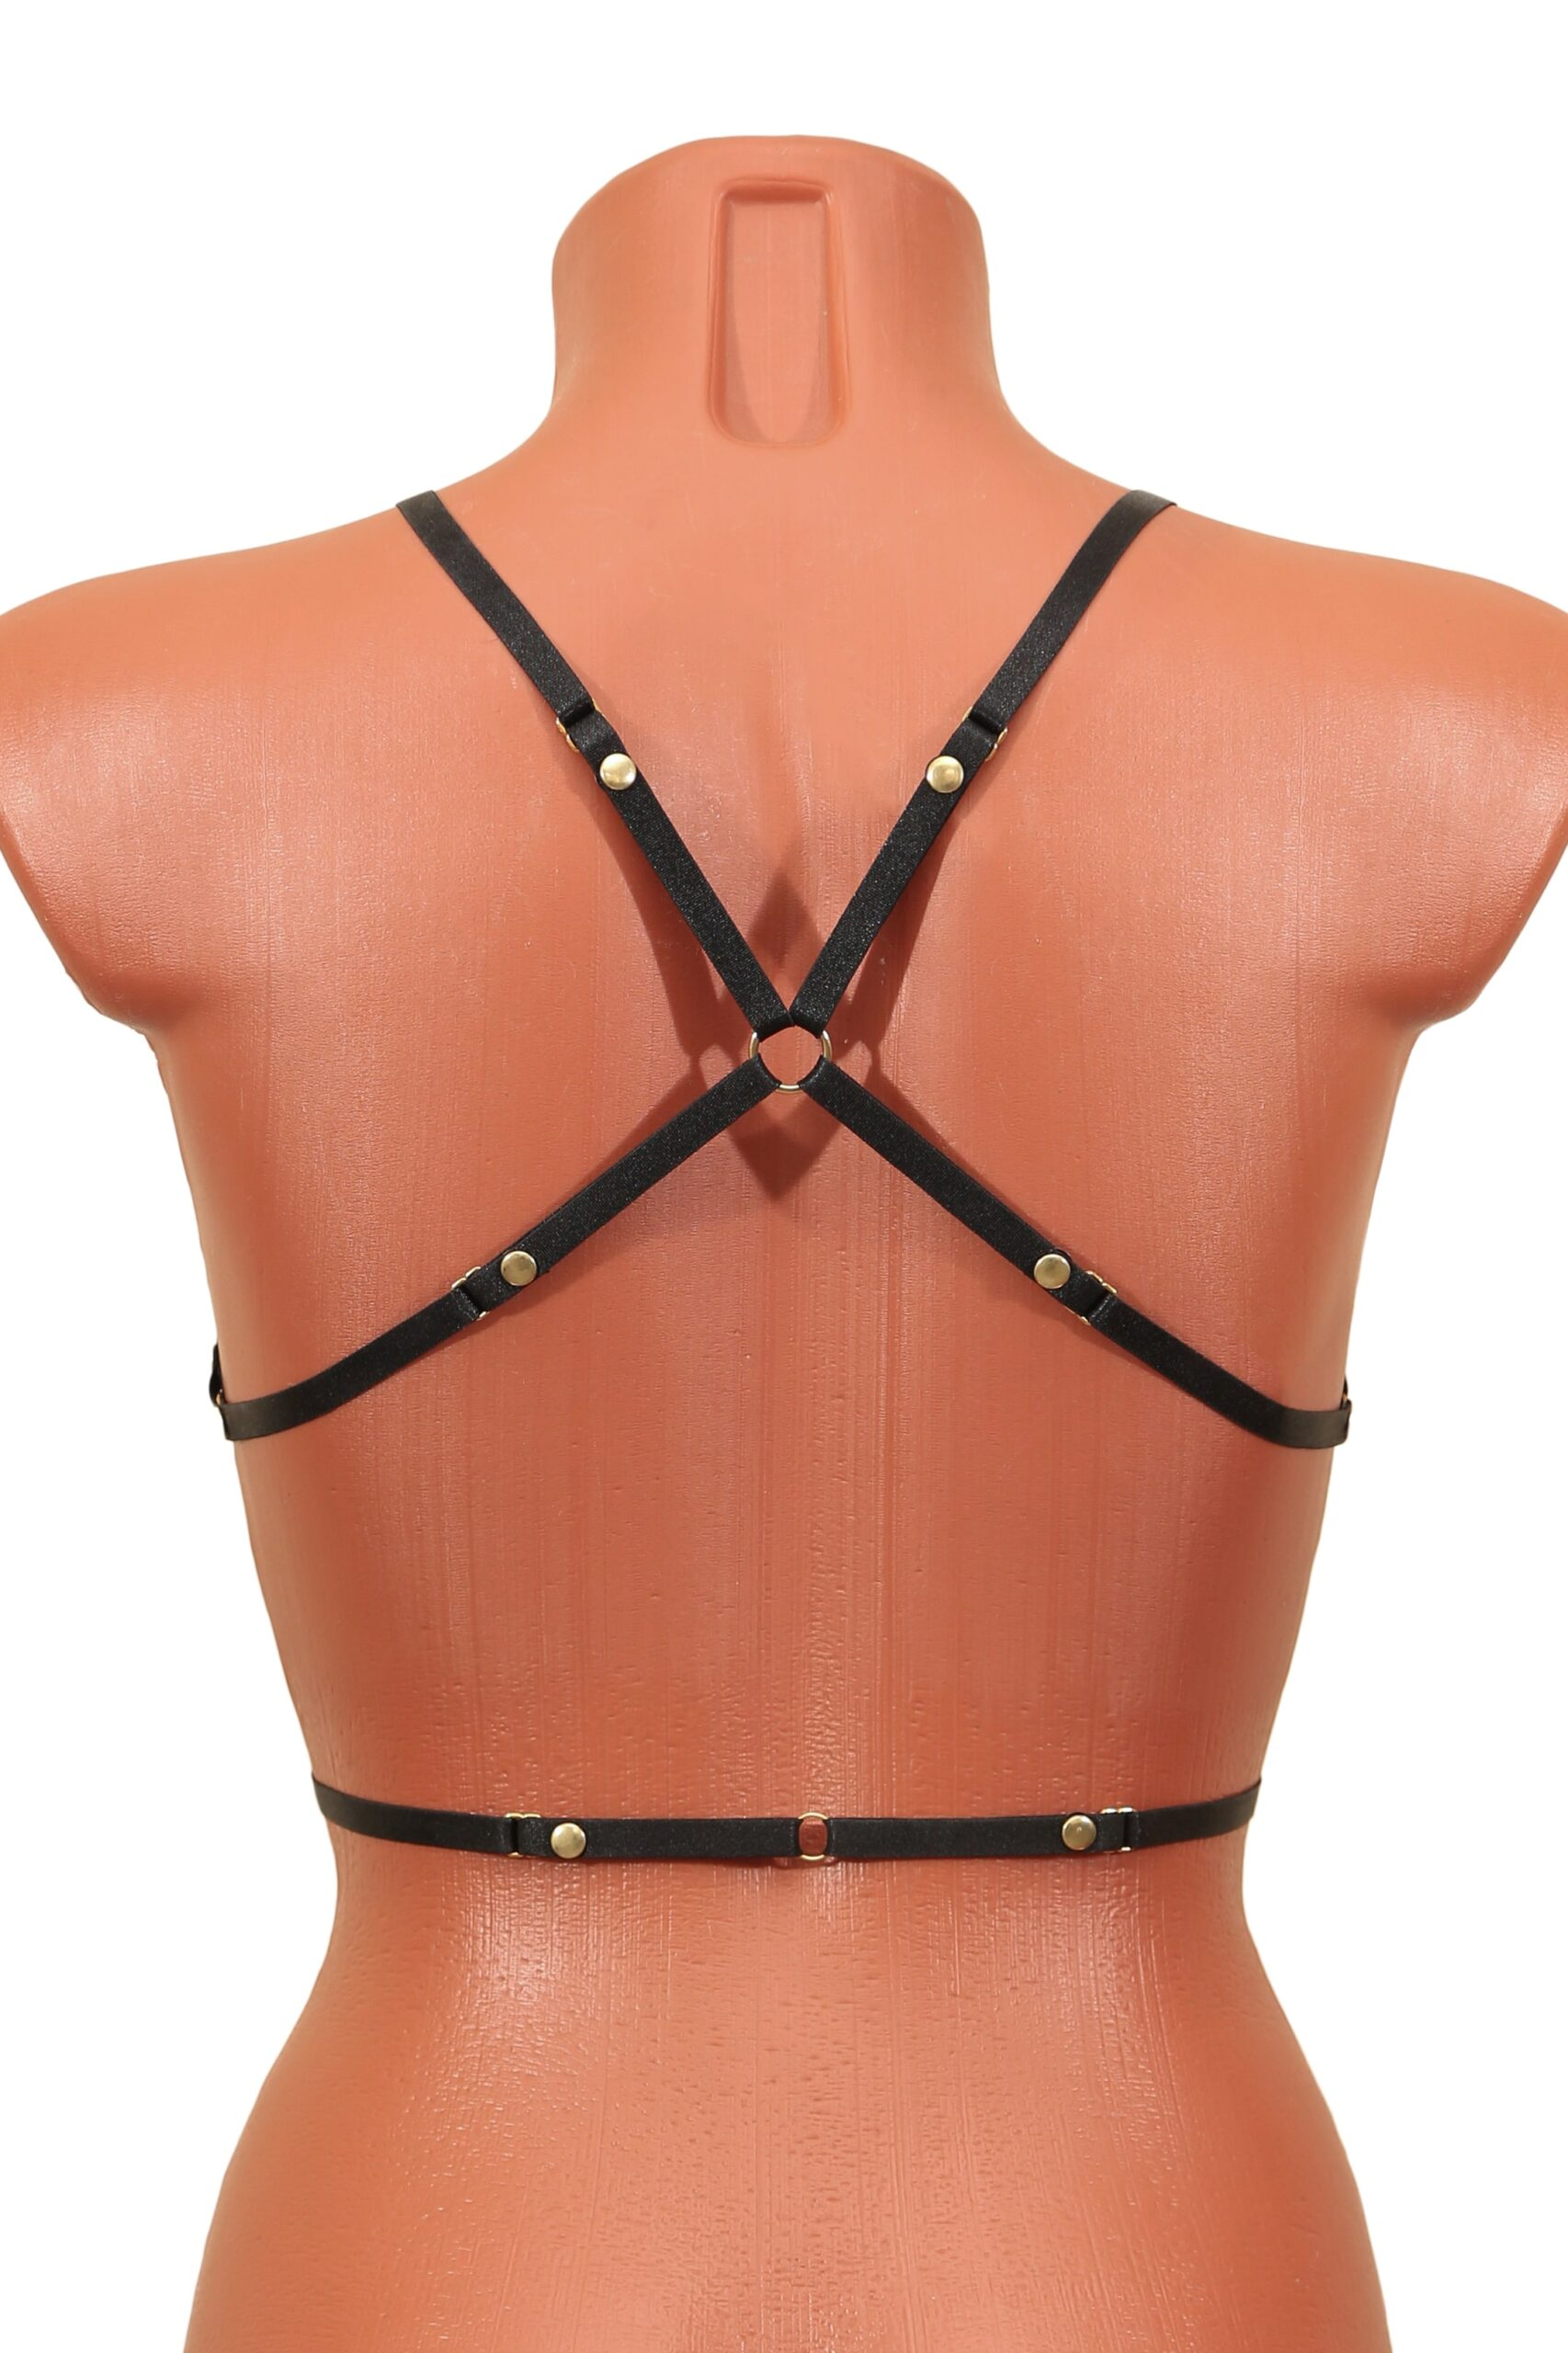 Cheeky erotic open thong harness panties and top. Sexy sheer kinky crotchless lingerie set. Hot micro bikini. BDSM collar. Stripper outfits.